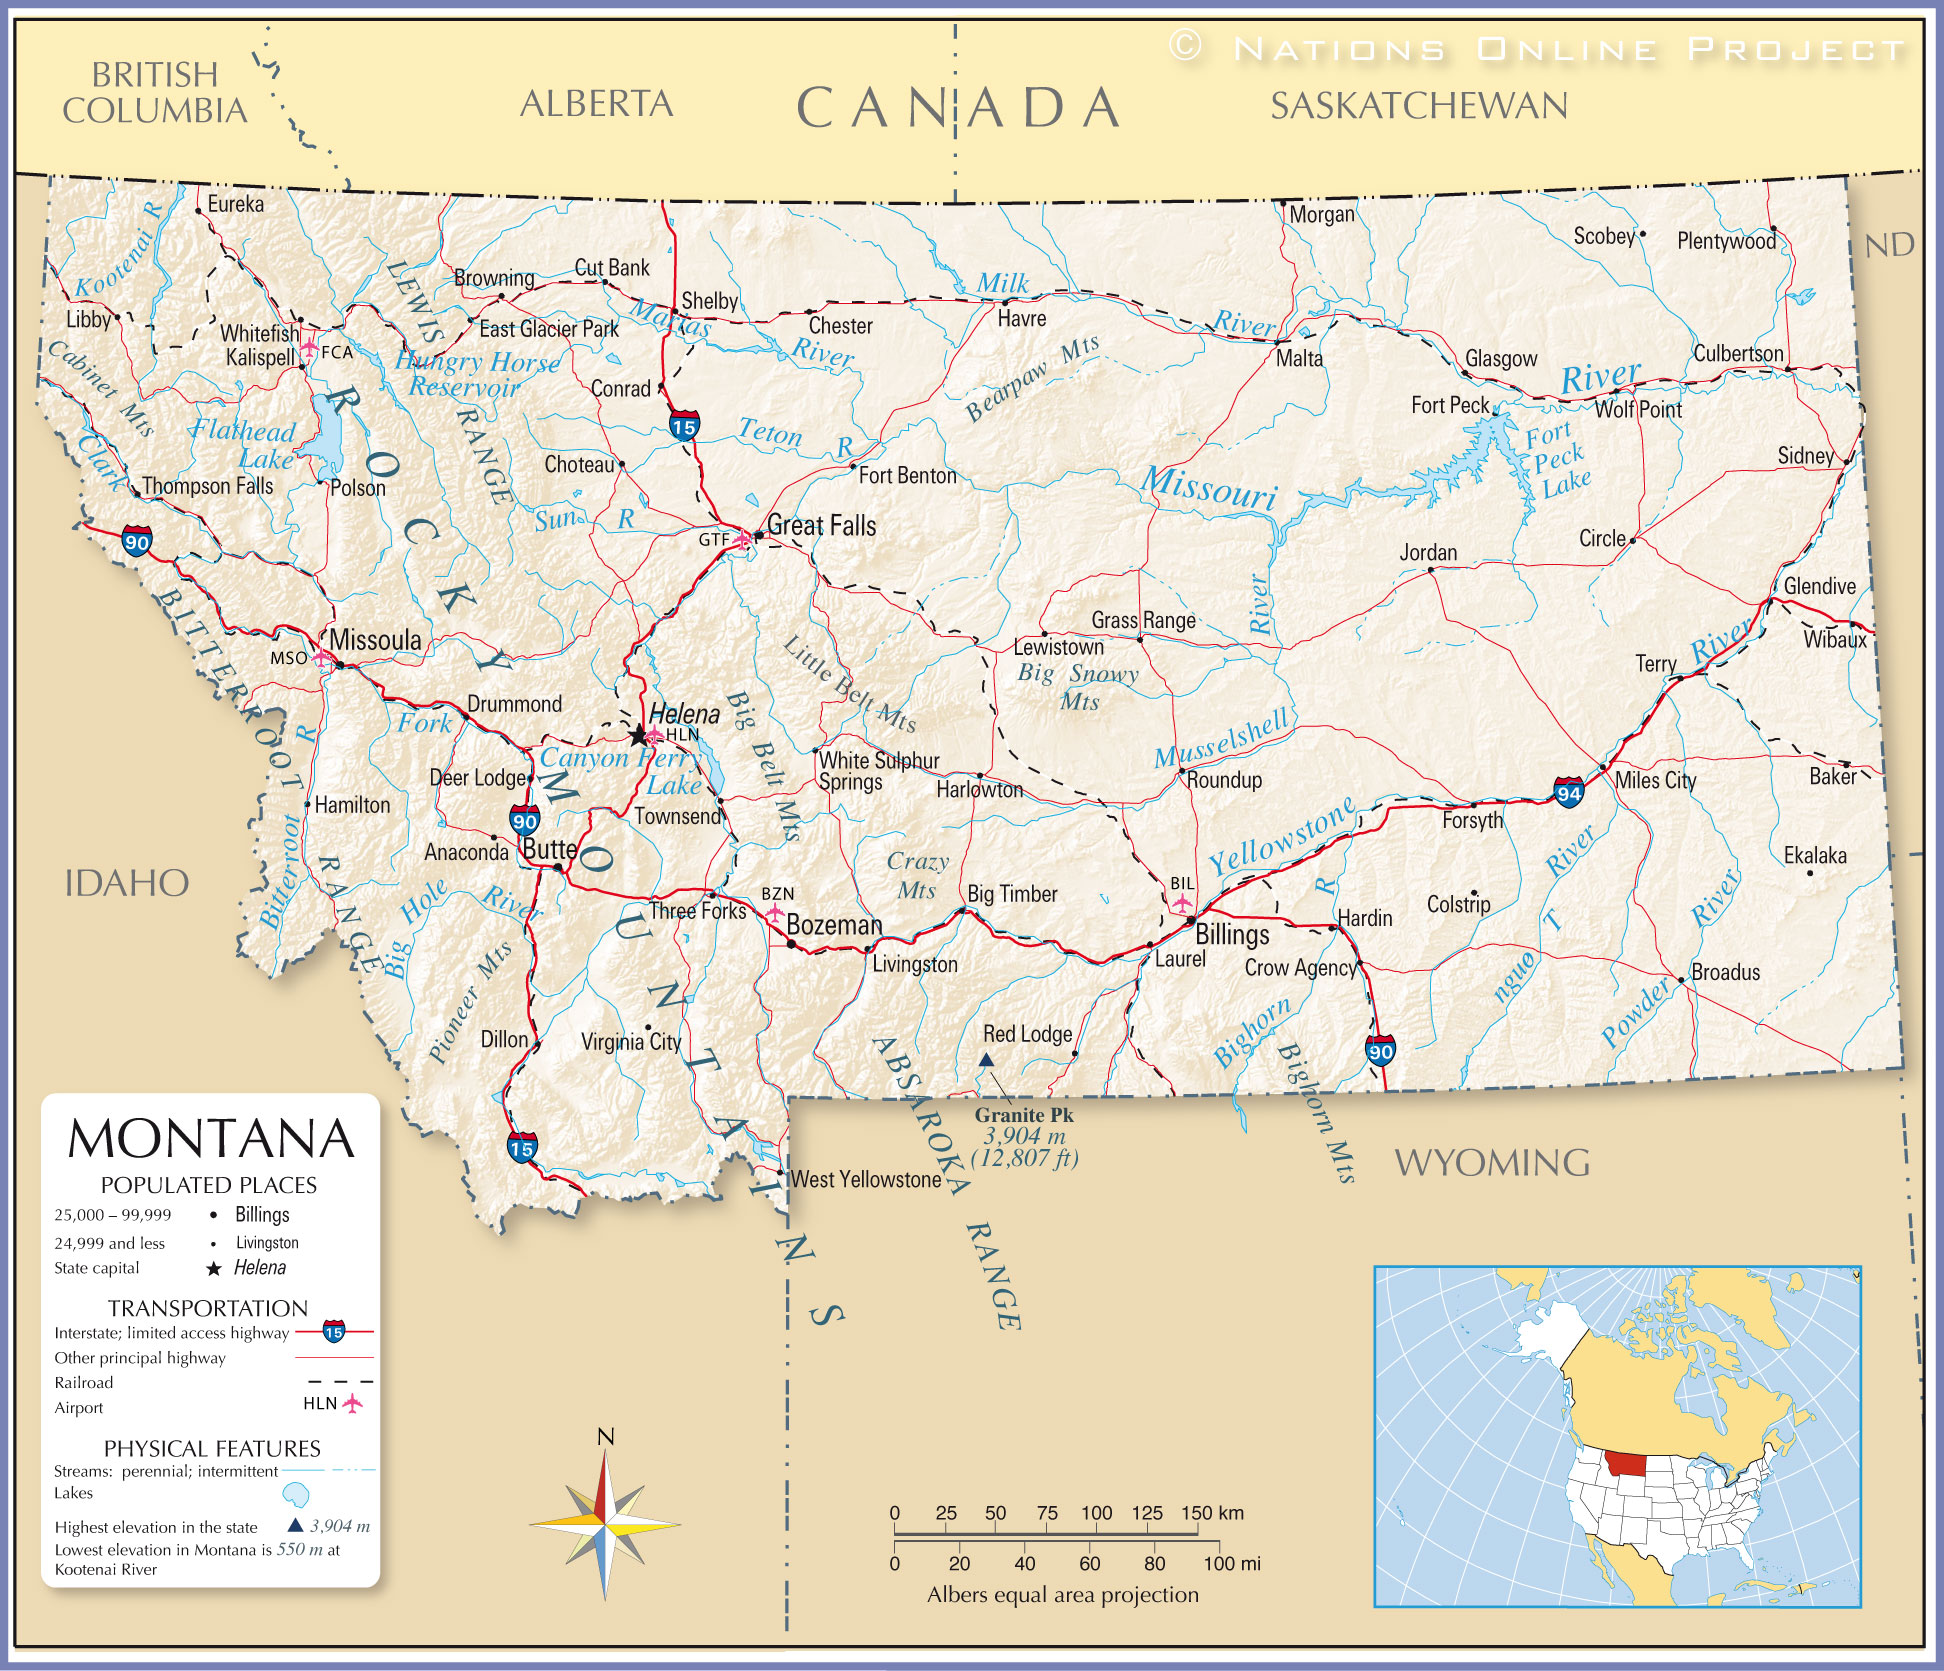 Reference Map Of Montana USA Nations Online Project - Map of montana with cities